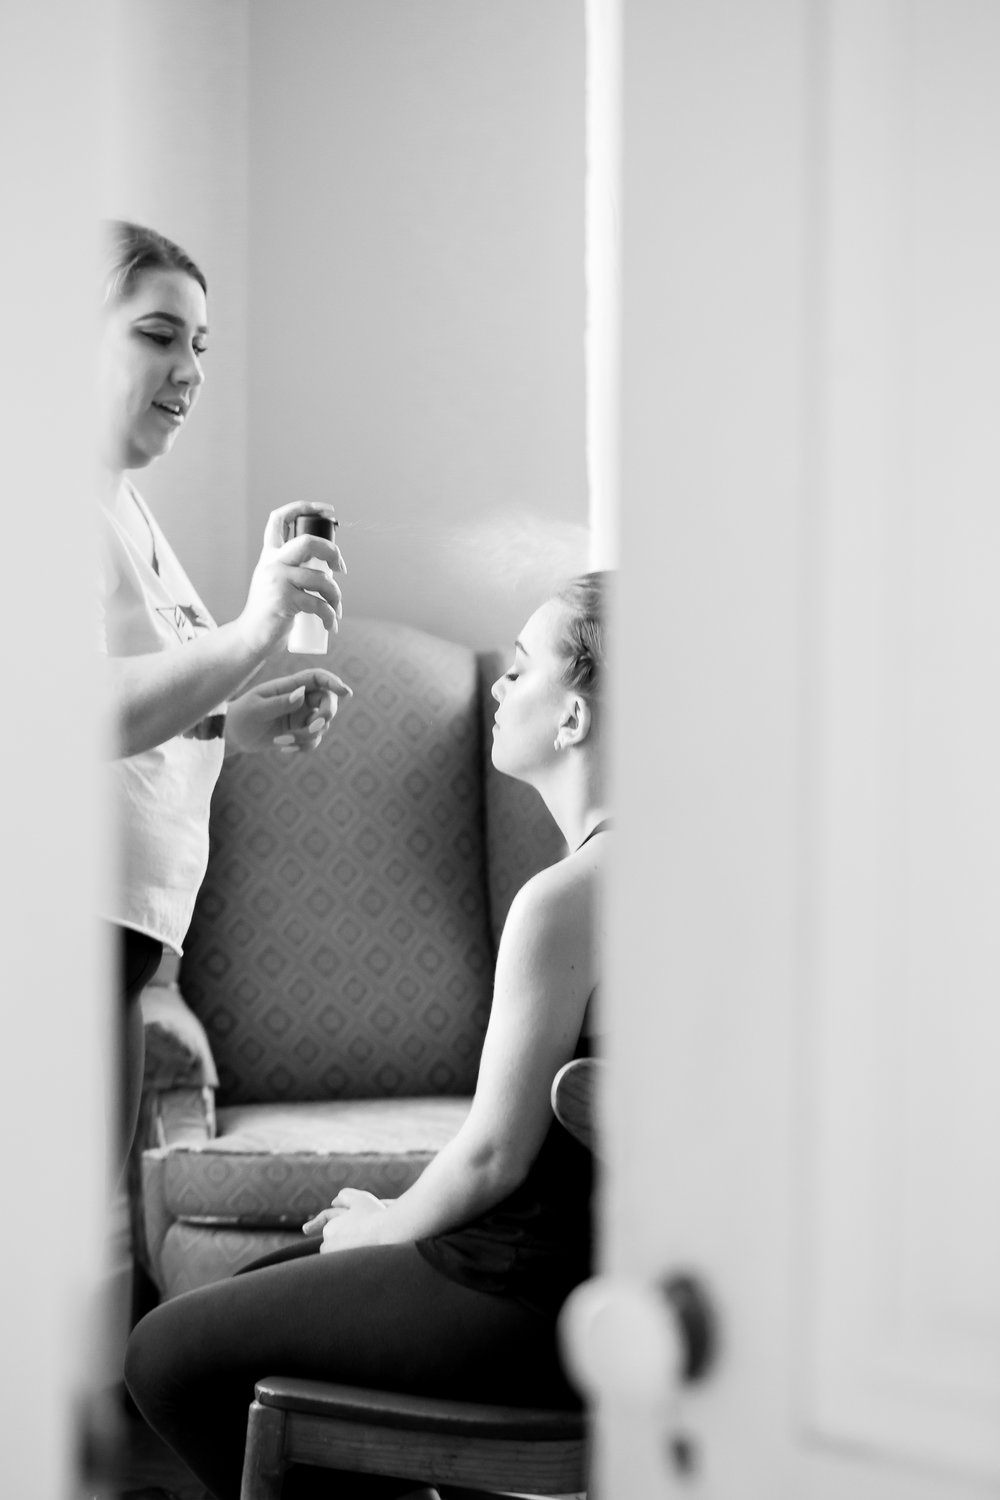 Gandjos_Tinko_BackSeatPhotography_backseatphoto20.JPG